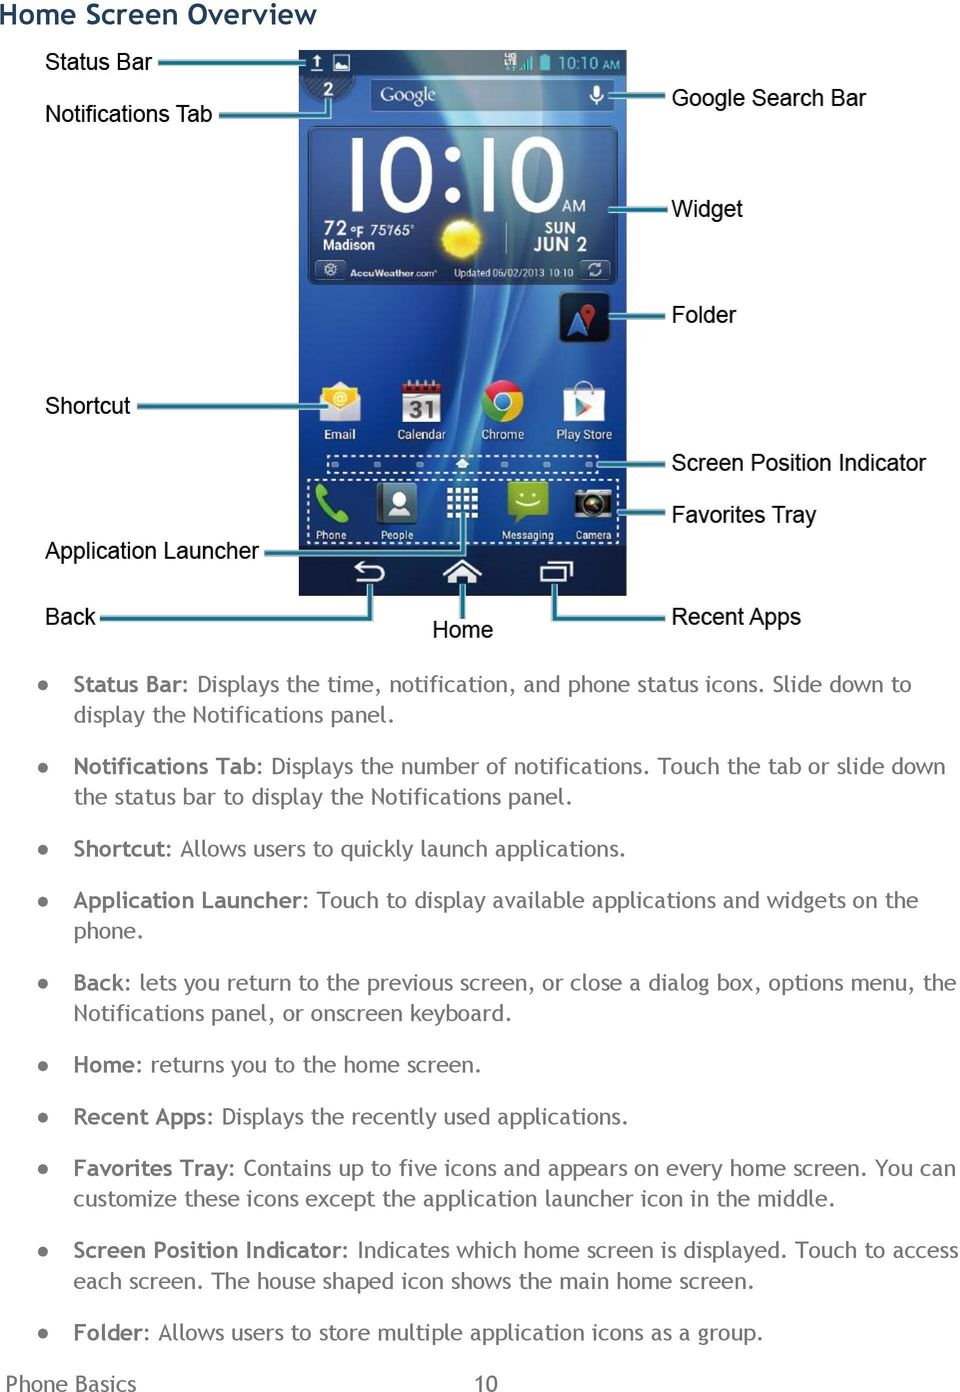 Application Launcher: Touch to display available applications and widgets on the phone.